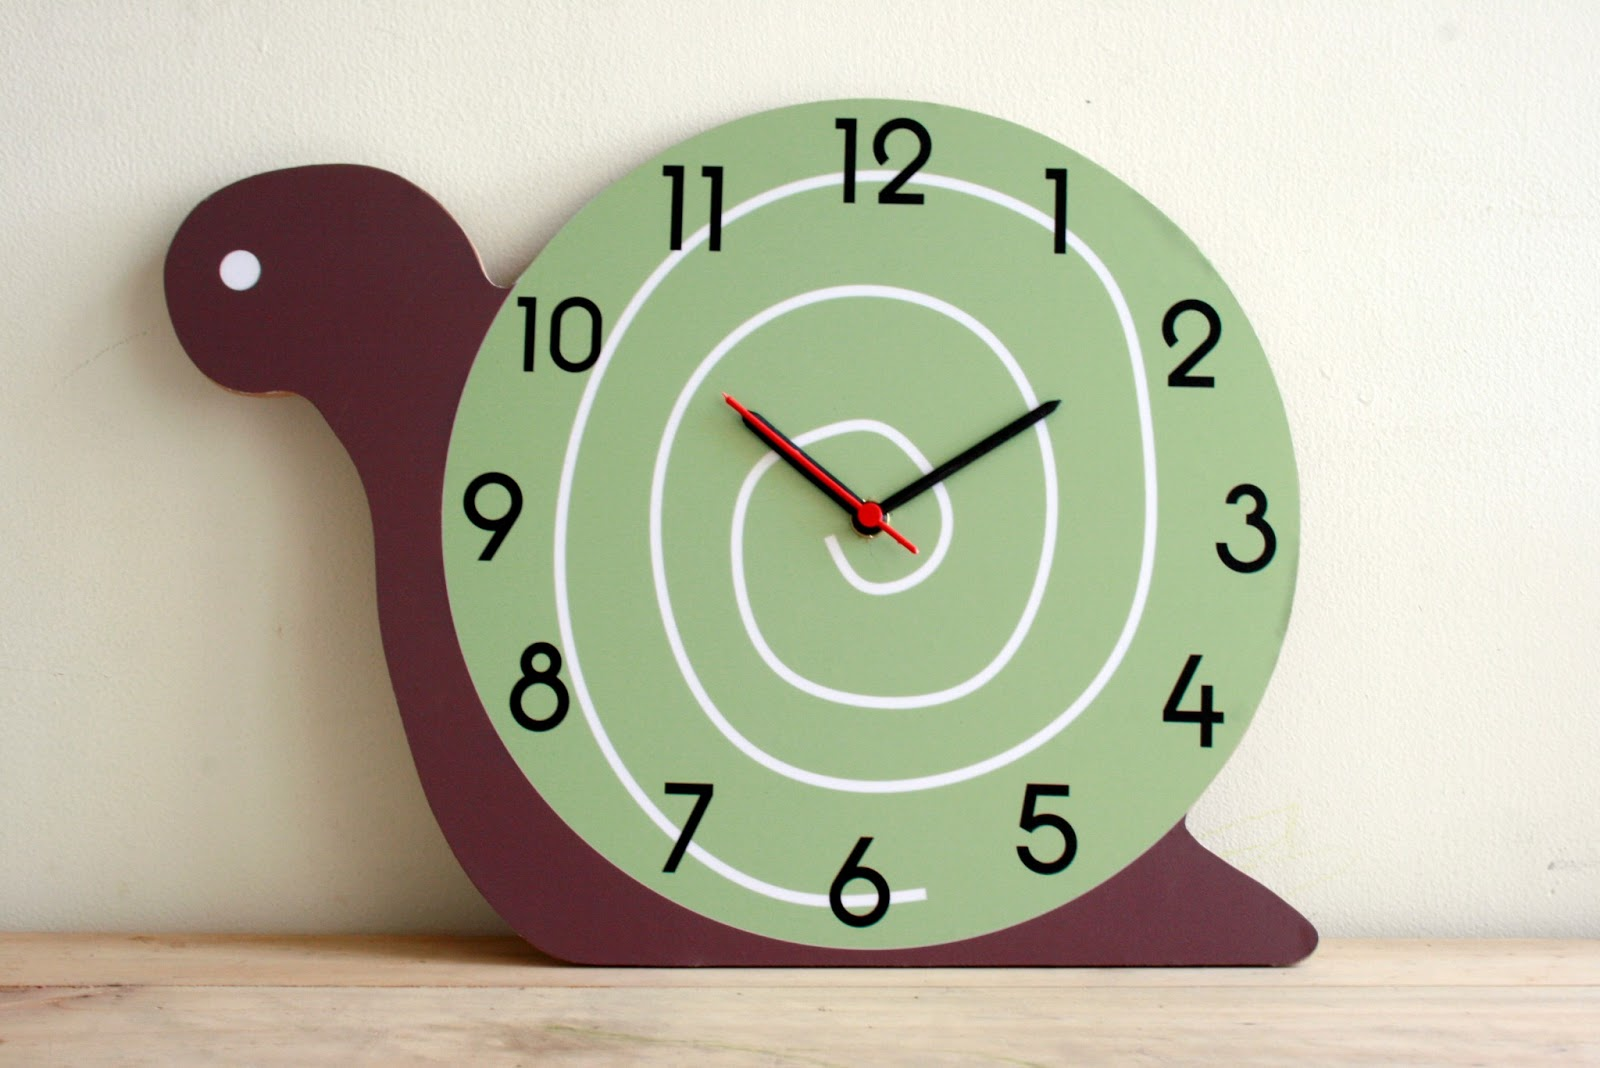 snail clock by squiggle elle clock by squiggle birdie clock by ...